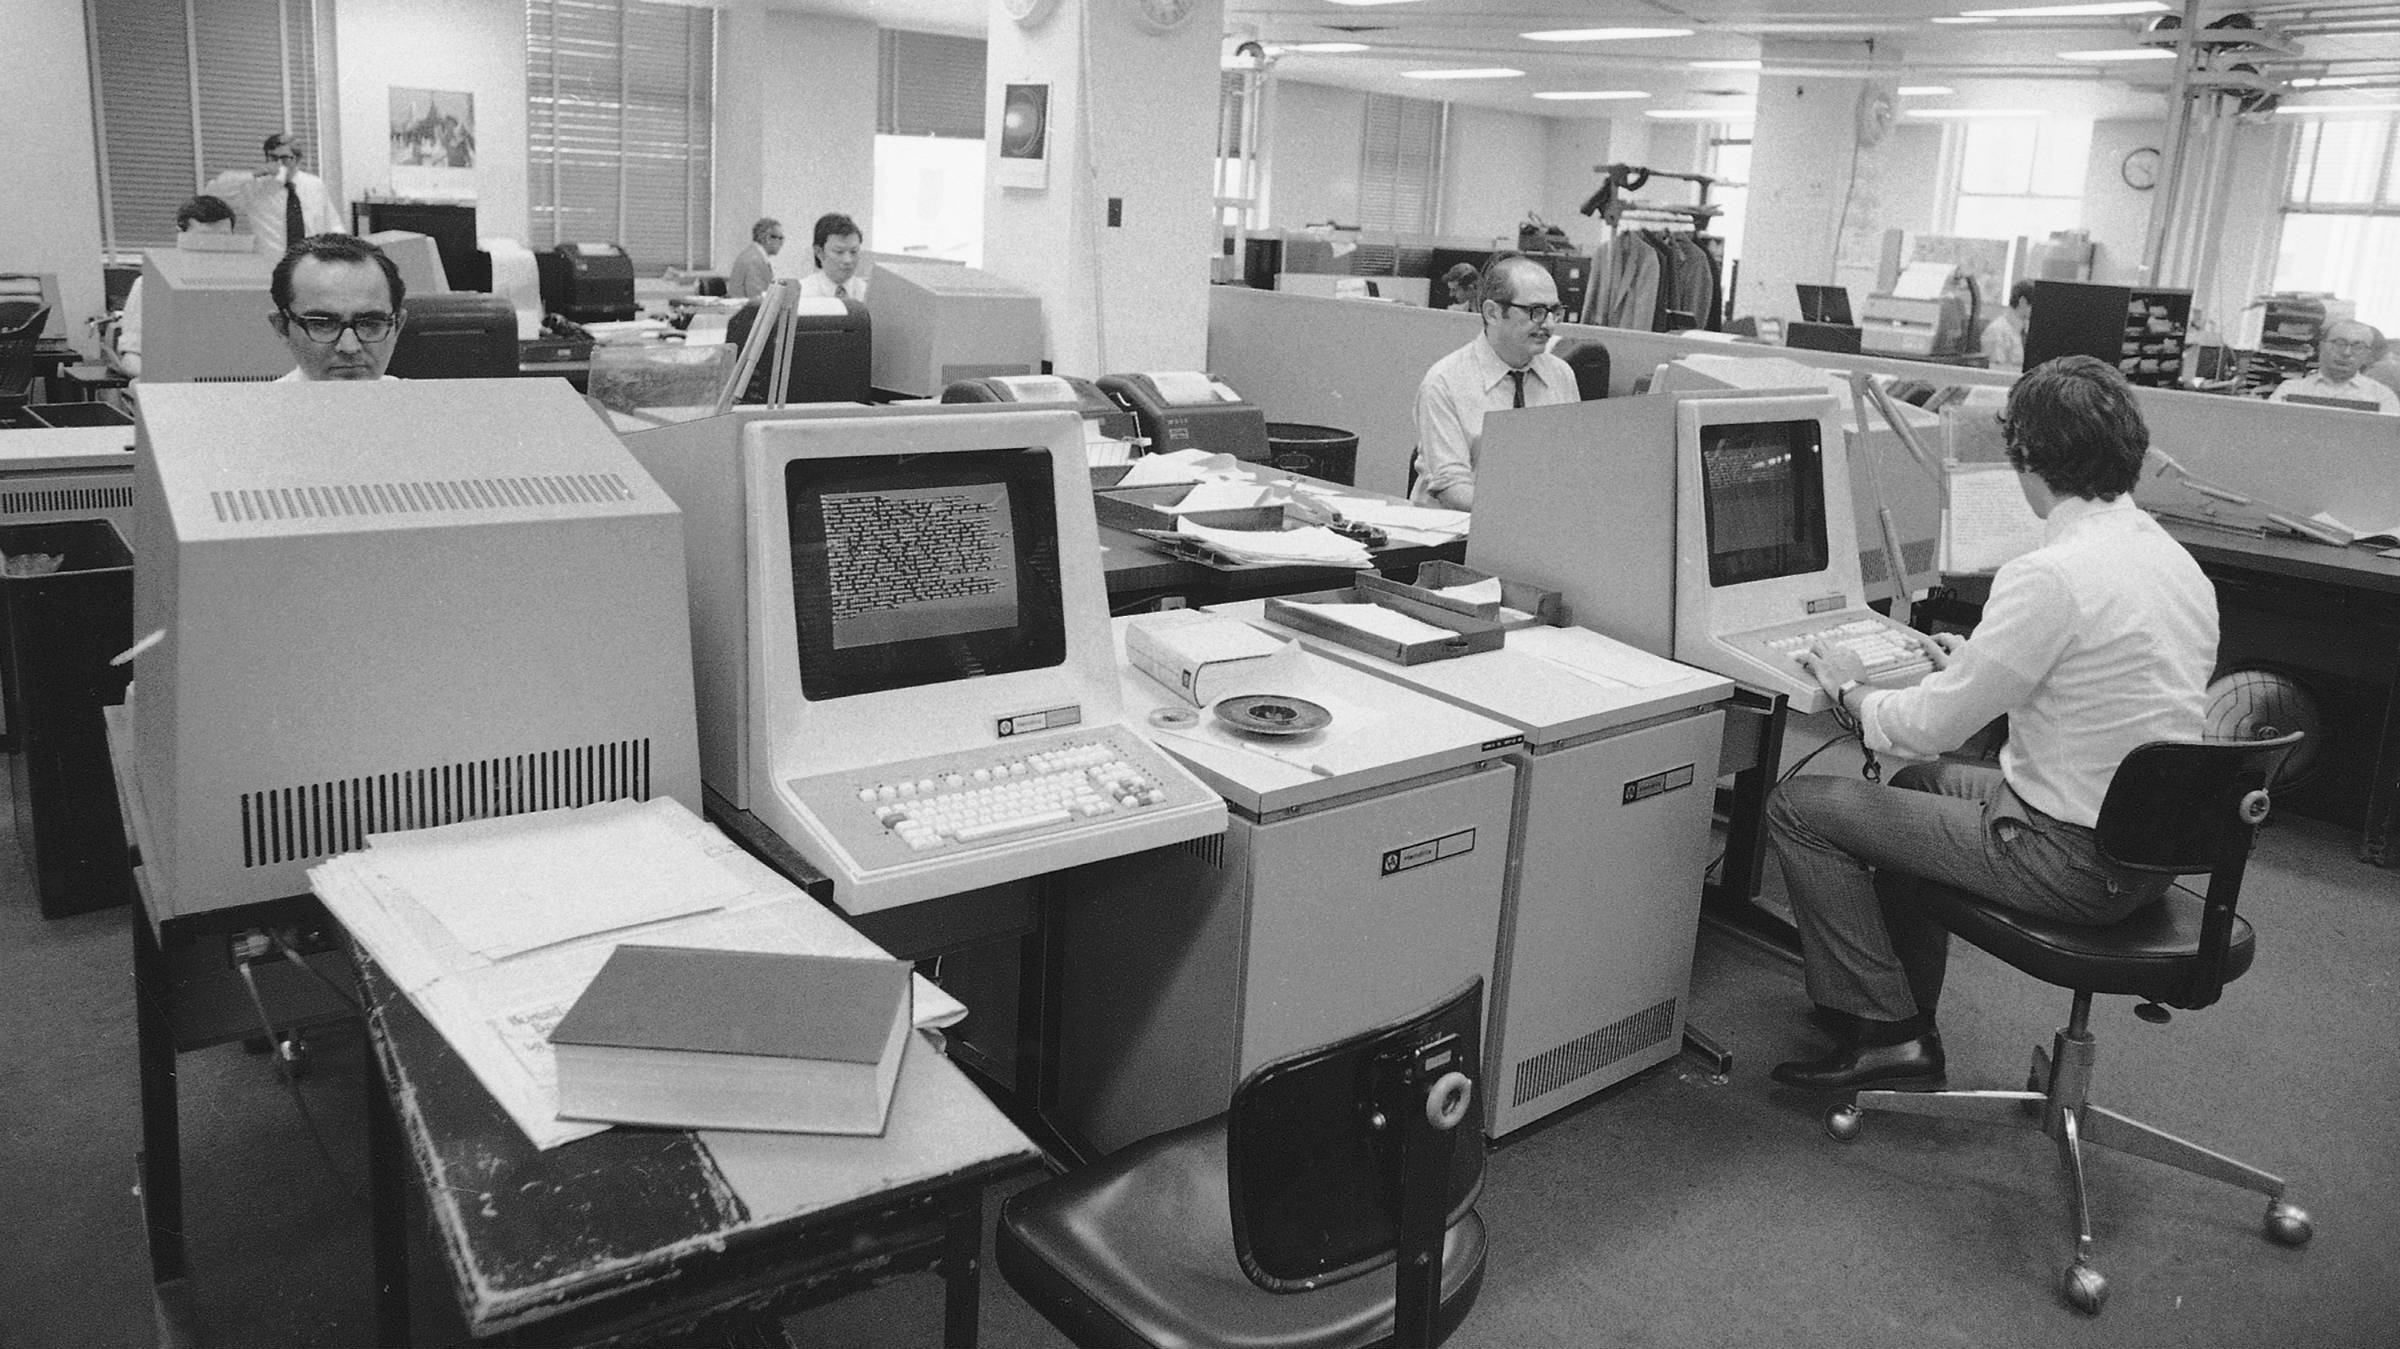 The Latin American and World Services desks at Associated Press headquarters in New York is seen, March 27, 1973. (AP Photo/Marty Lederhandler)